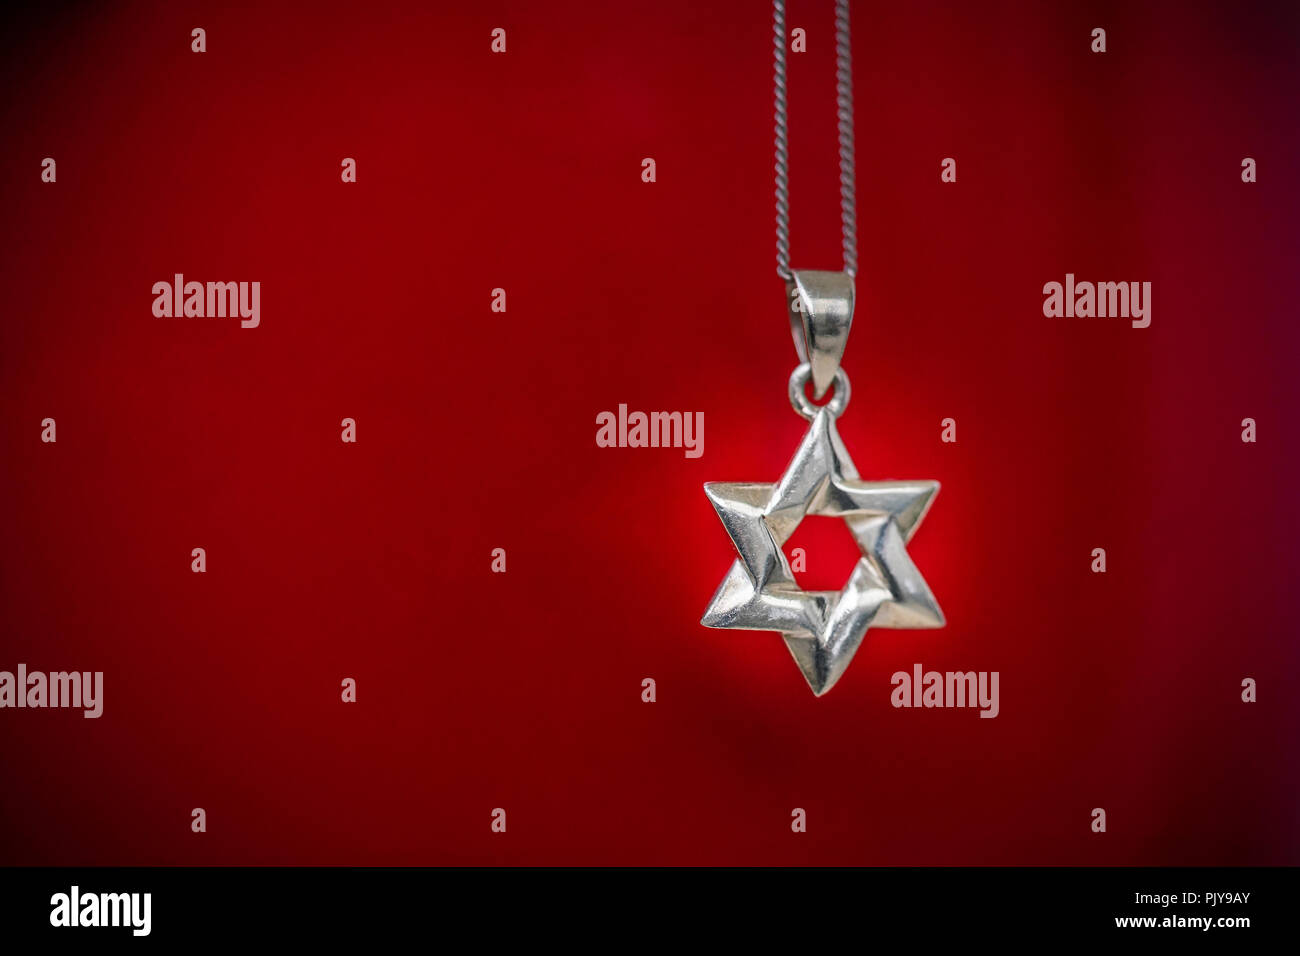 Silver necklace with a silver Star of David pendant against red background - Judaism concept - Stock Image